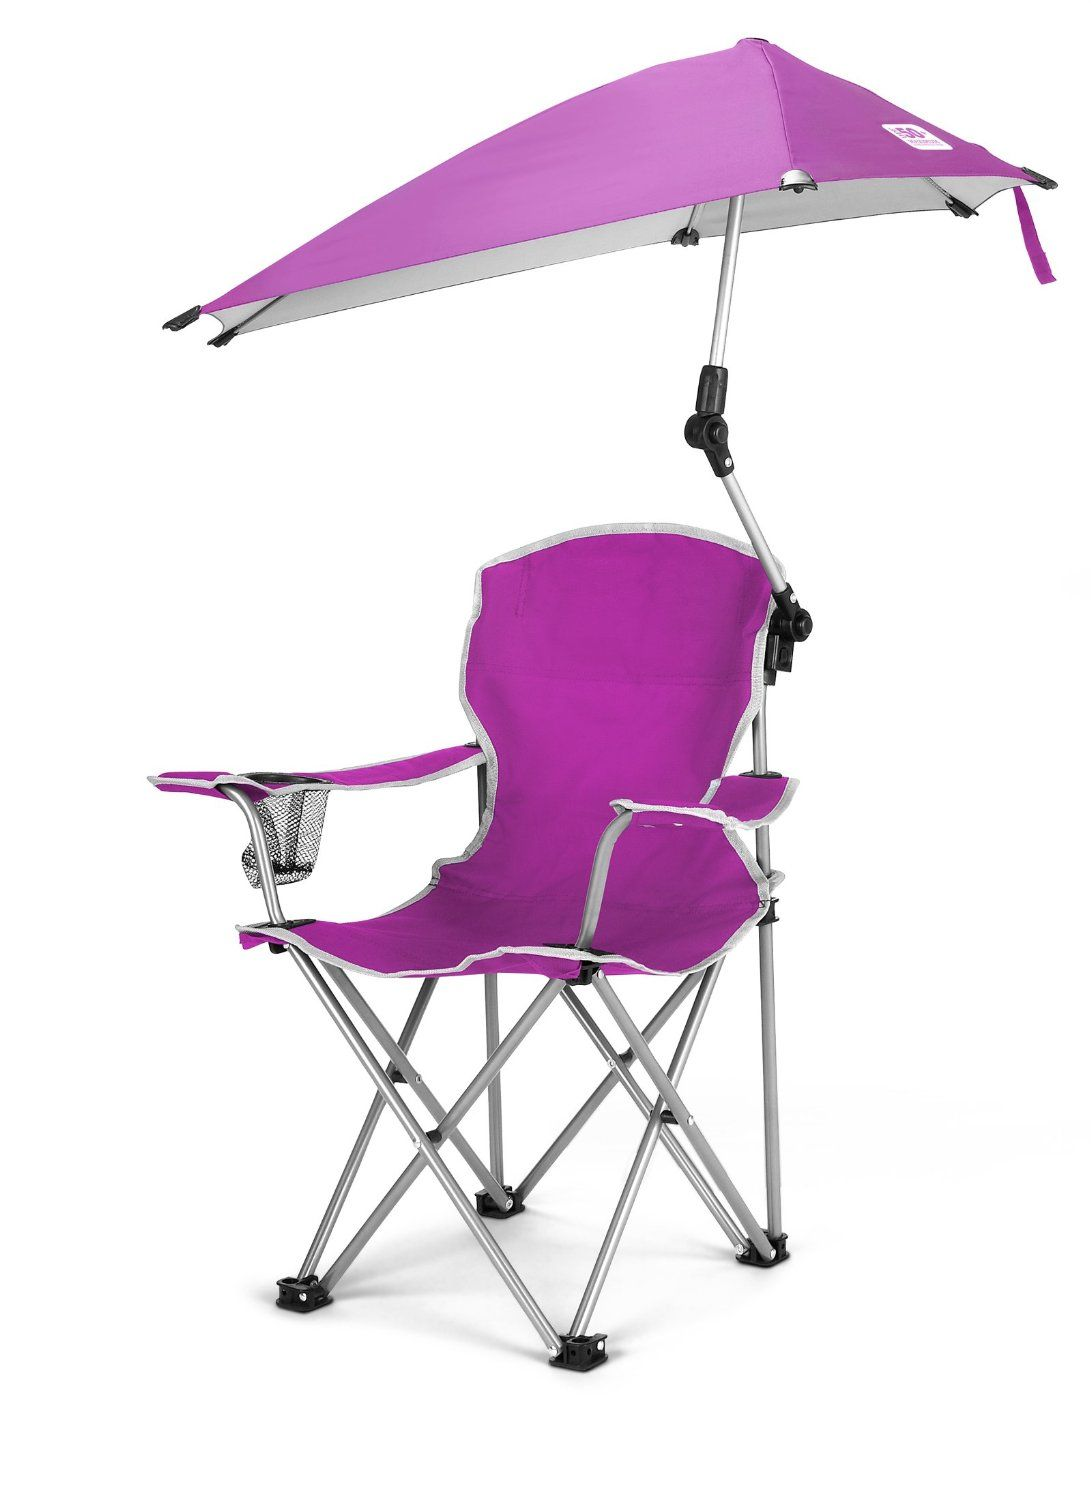 Camping chairs with umbrella - Toddler Camping Chair With Umbrella 360 Degree Sun And Wind Protection For Kids Light